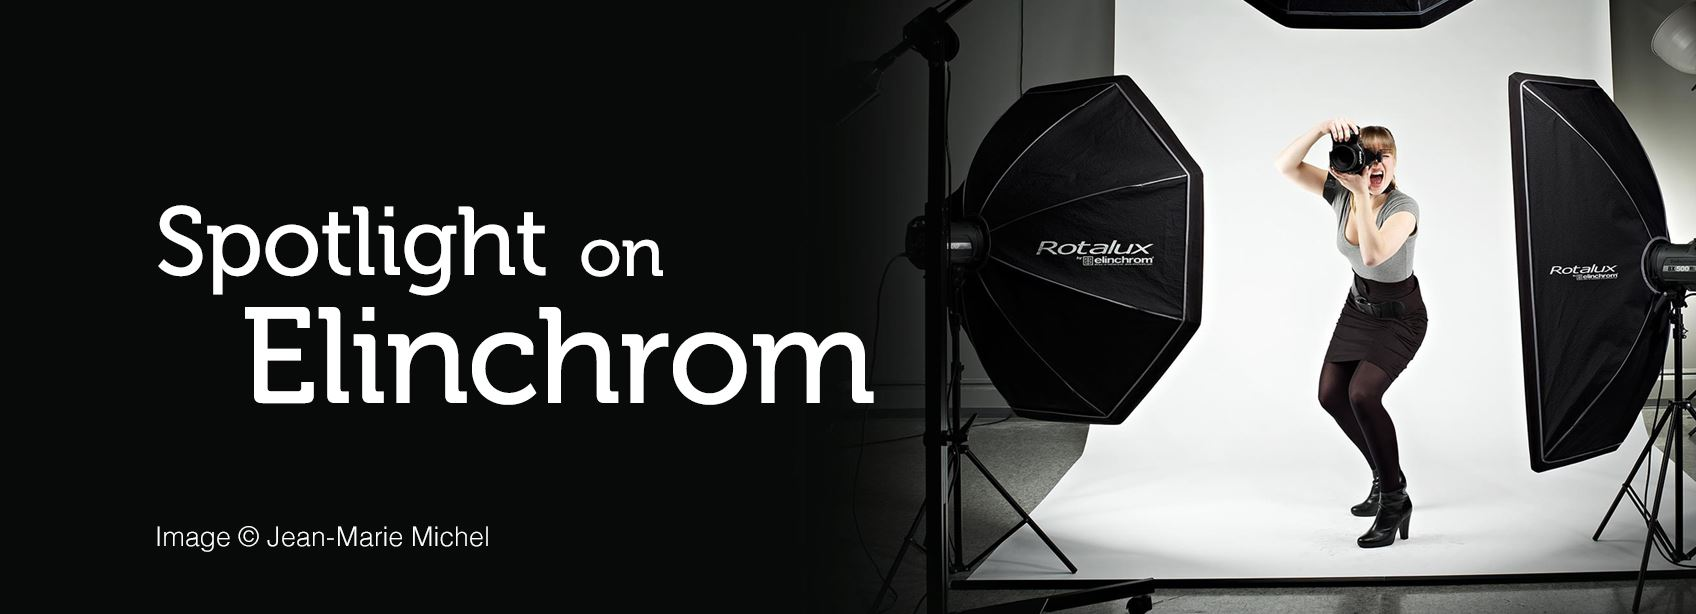 Spotlight On: Elinchrom